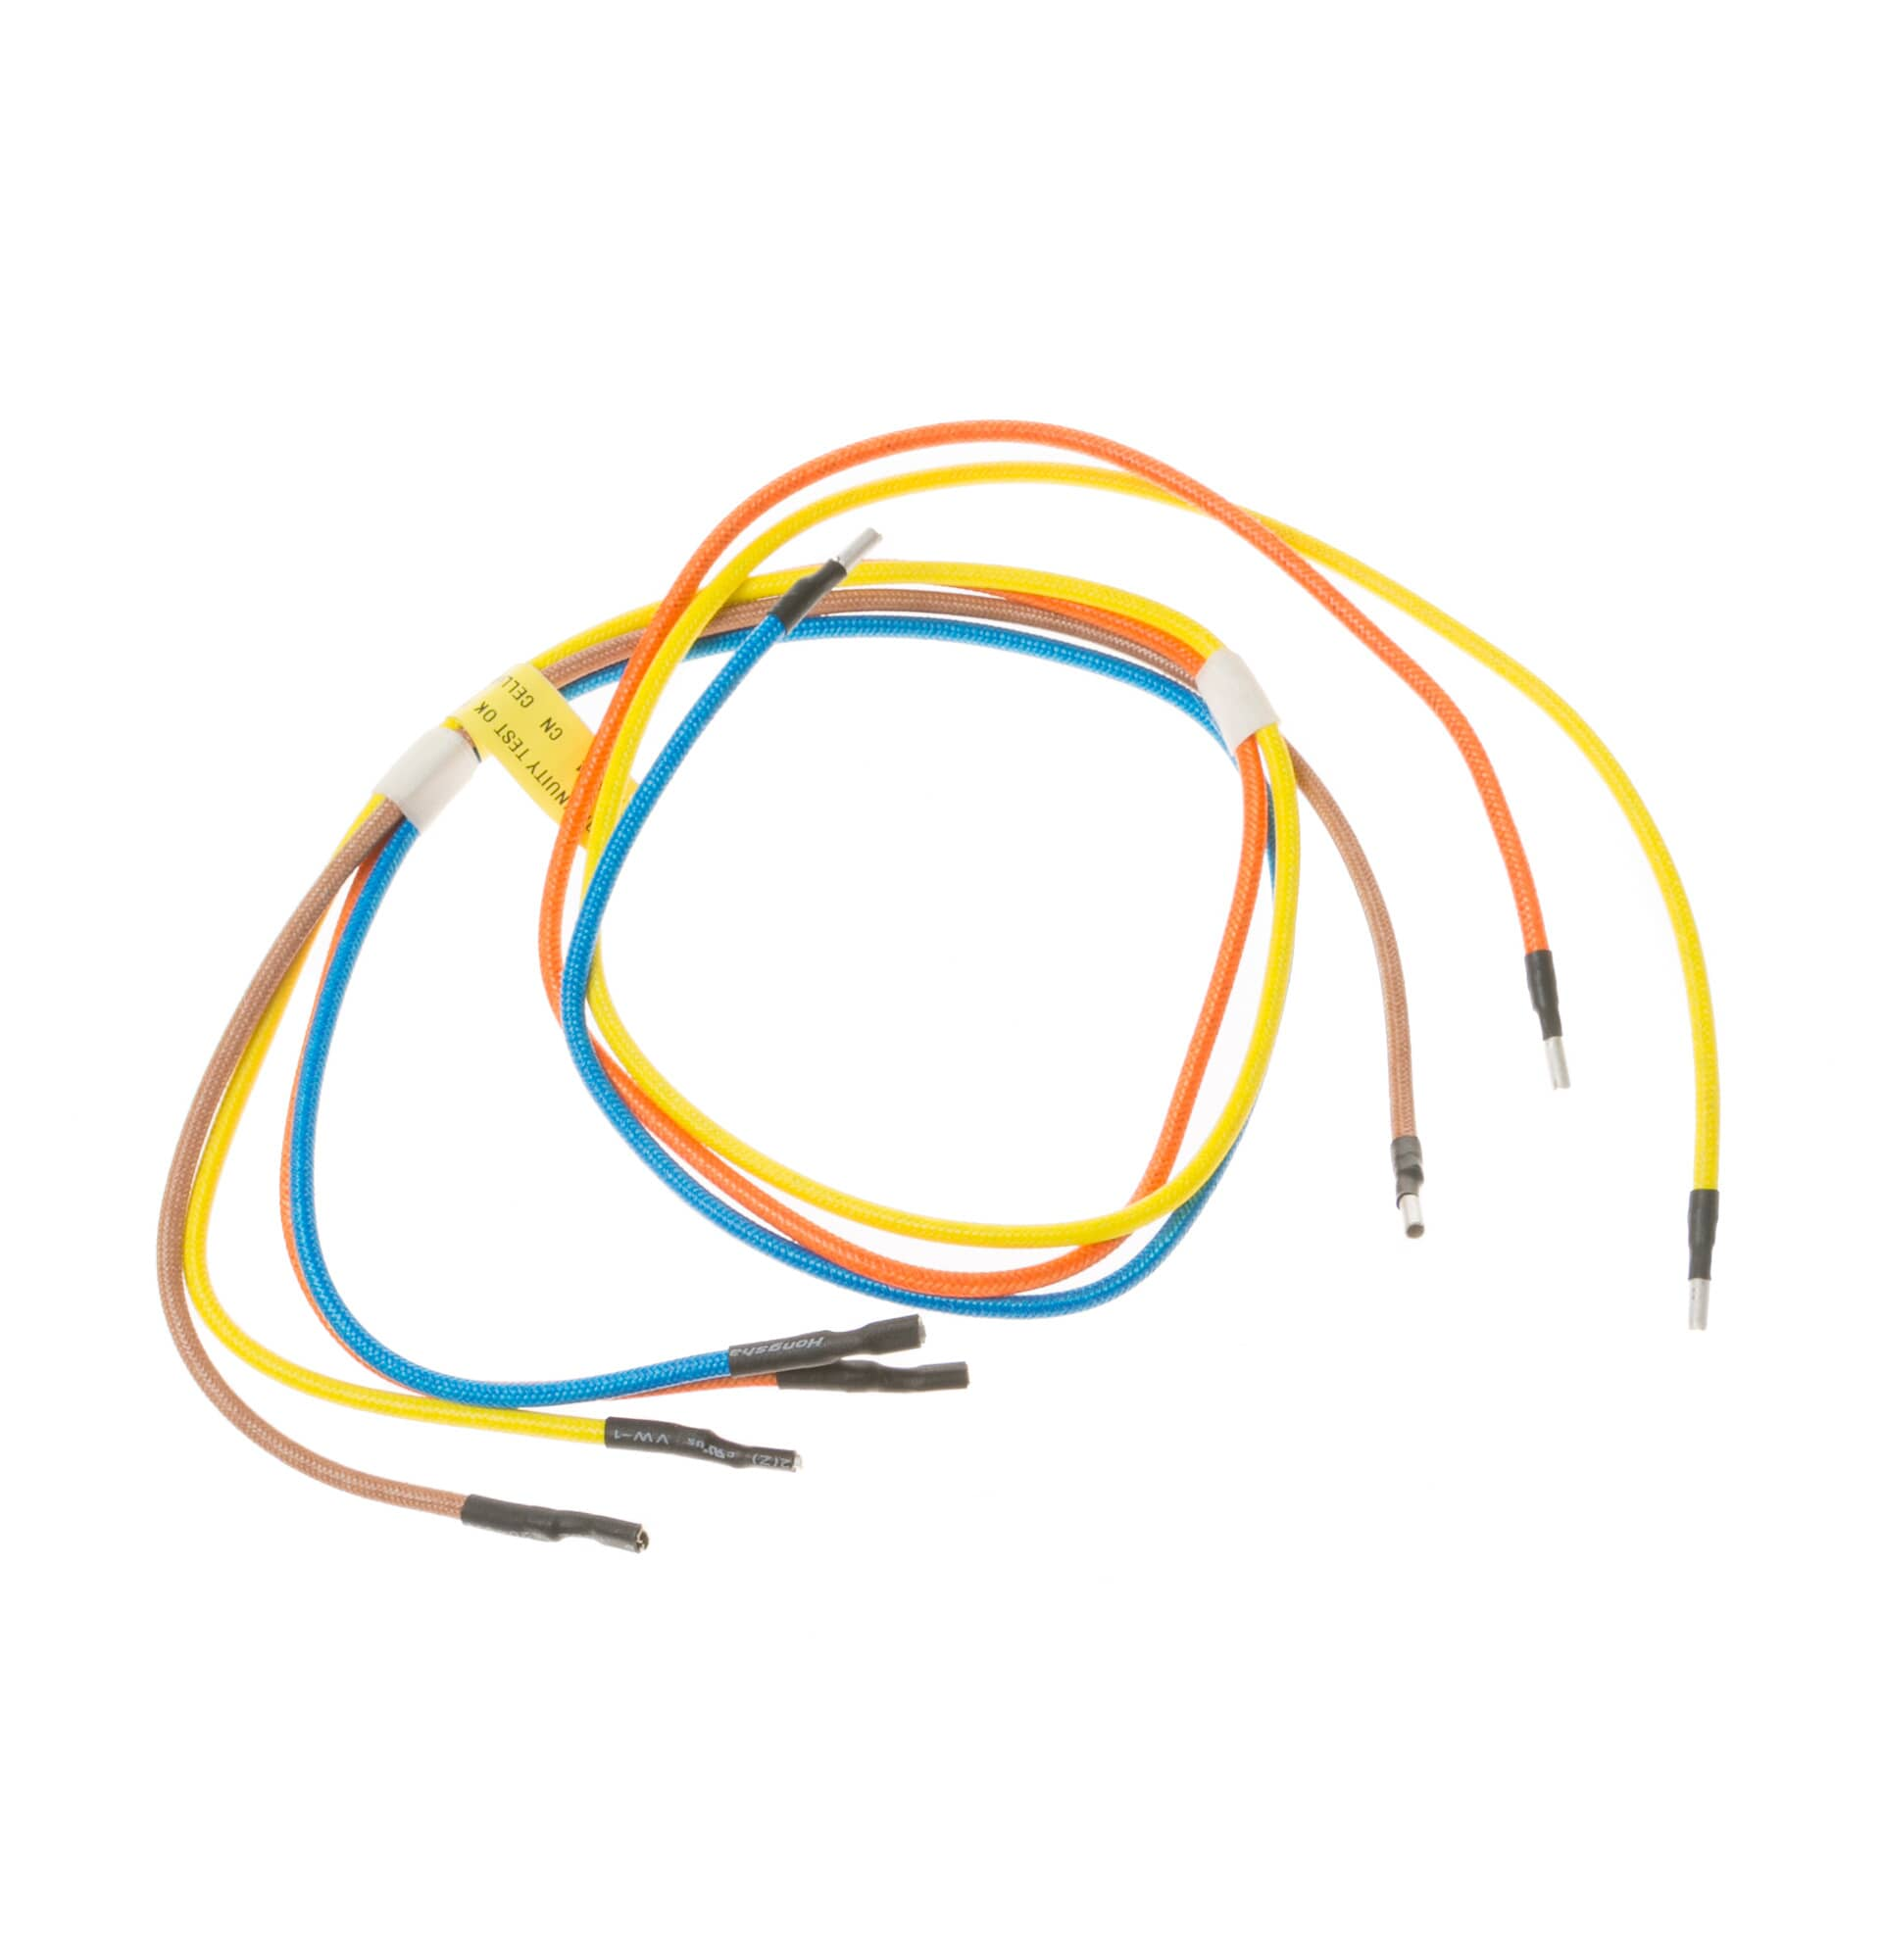 GE Appliance WB18T10407 HARNESS, WIRE BURN